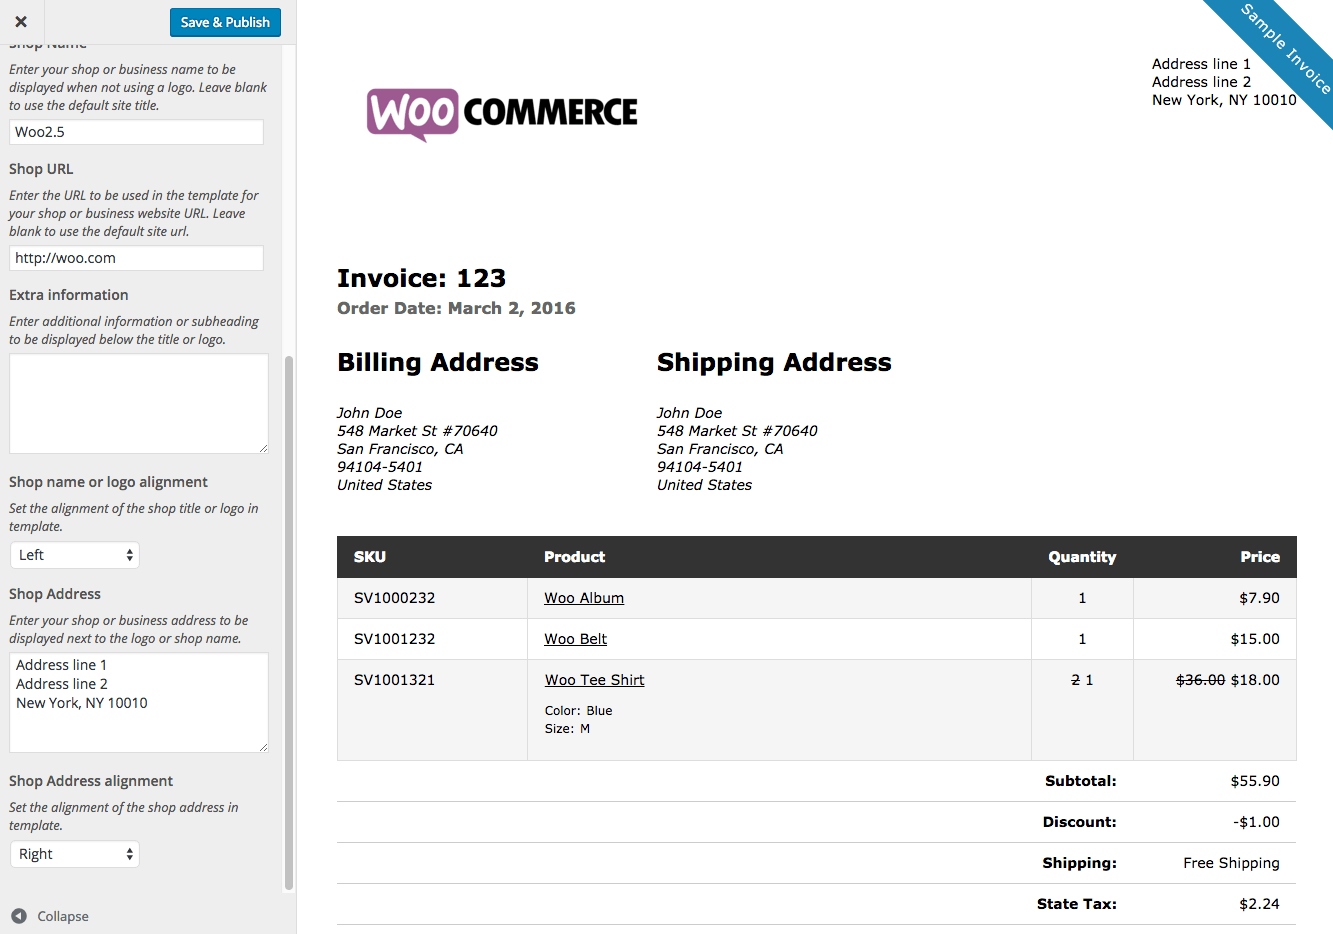 Weverducreus  Gorgeous Print Invoices Amp Packing Lists  Woocommerce With Exciting Woocommerce Print Invoices  Packing Lists Customizer With Archaic Invoices For Ipad Also Online Invoicing Software Free In Addition Service Billing Invoice Template And Invoice Download Free As Well As Simple Proforma Invoice Template Additionally Where To Find Car Invoice Price From Woocommercecom With Weverducreus  Exciting Print Invoices Amp Packing Lists  Woocommerce With Archaic Woocommerce Print Invoices  Packing Lists Customizer And Gorgeous Invoices For Ipad Also Online Invoicing Software Free In Addition Service Billing Invoice Template From Woocommercecom